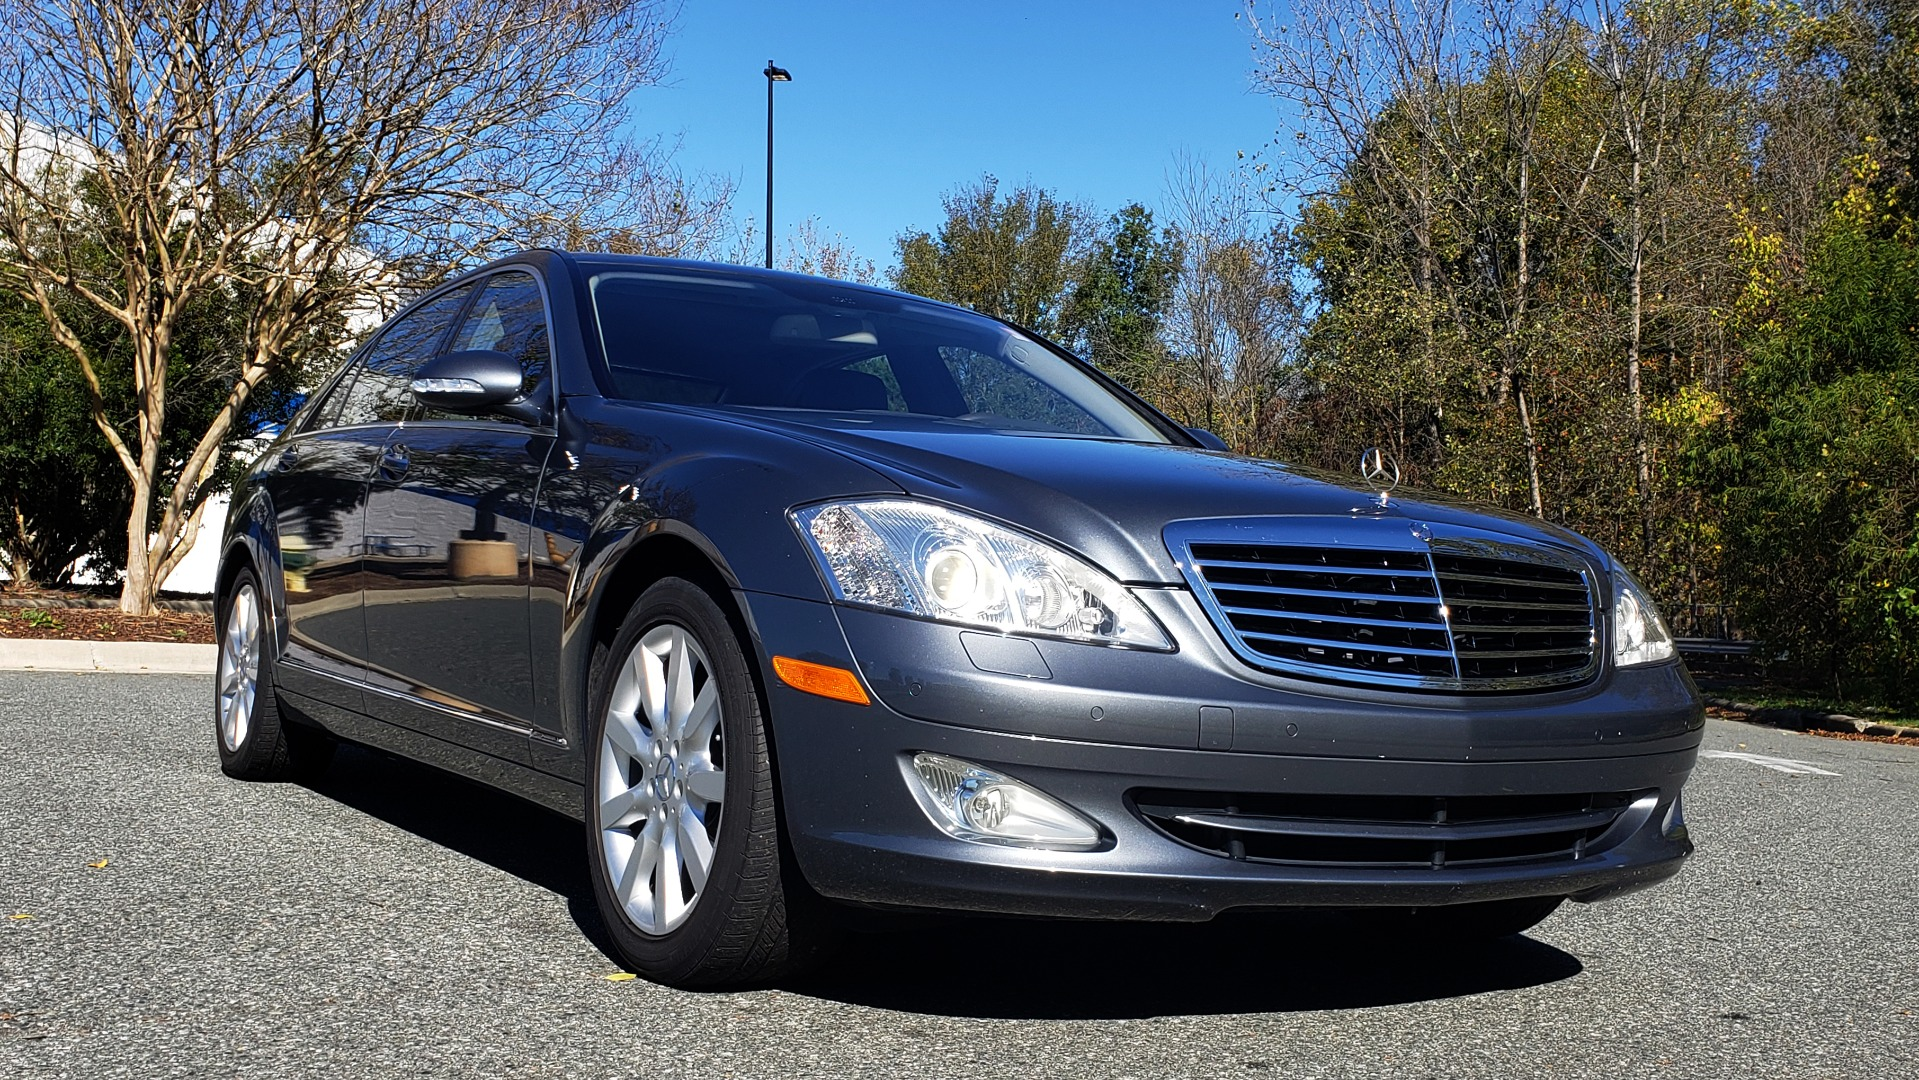 Used 2007 Mercedes-Benz S-CLASS S550 5.5L V8 / LWB / PREM 2 / NAV / SUNROOF / KEYLESS-GO for sale Sold at Formula Imports in Charlotte NC 28227 7